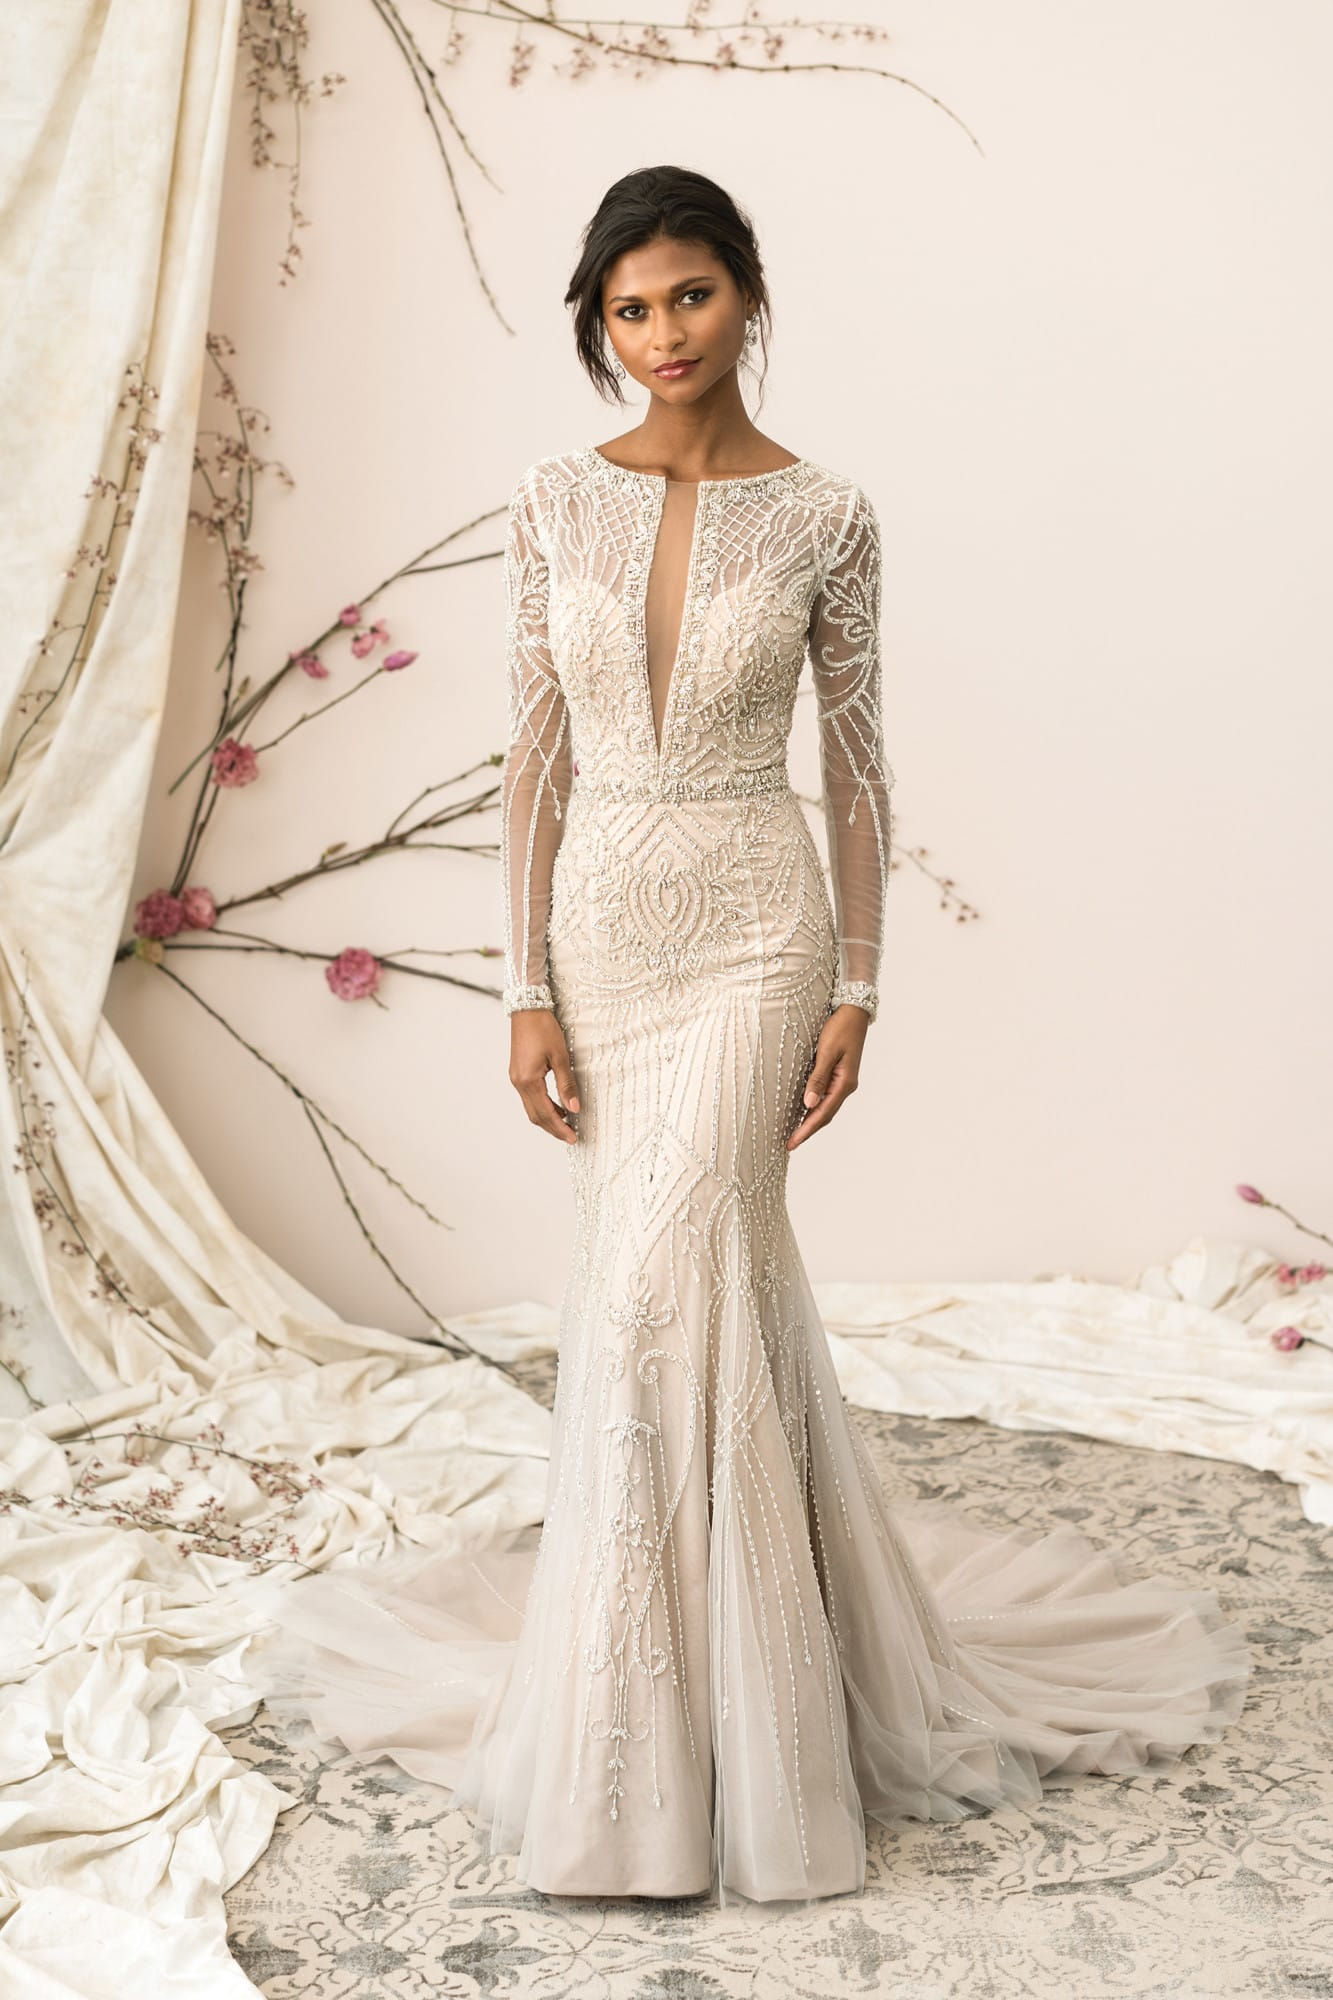 Justin Alexander 9894 from the 2019 Collection – Plunging V neck, all over beaded fit & flare gown